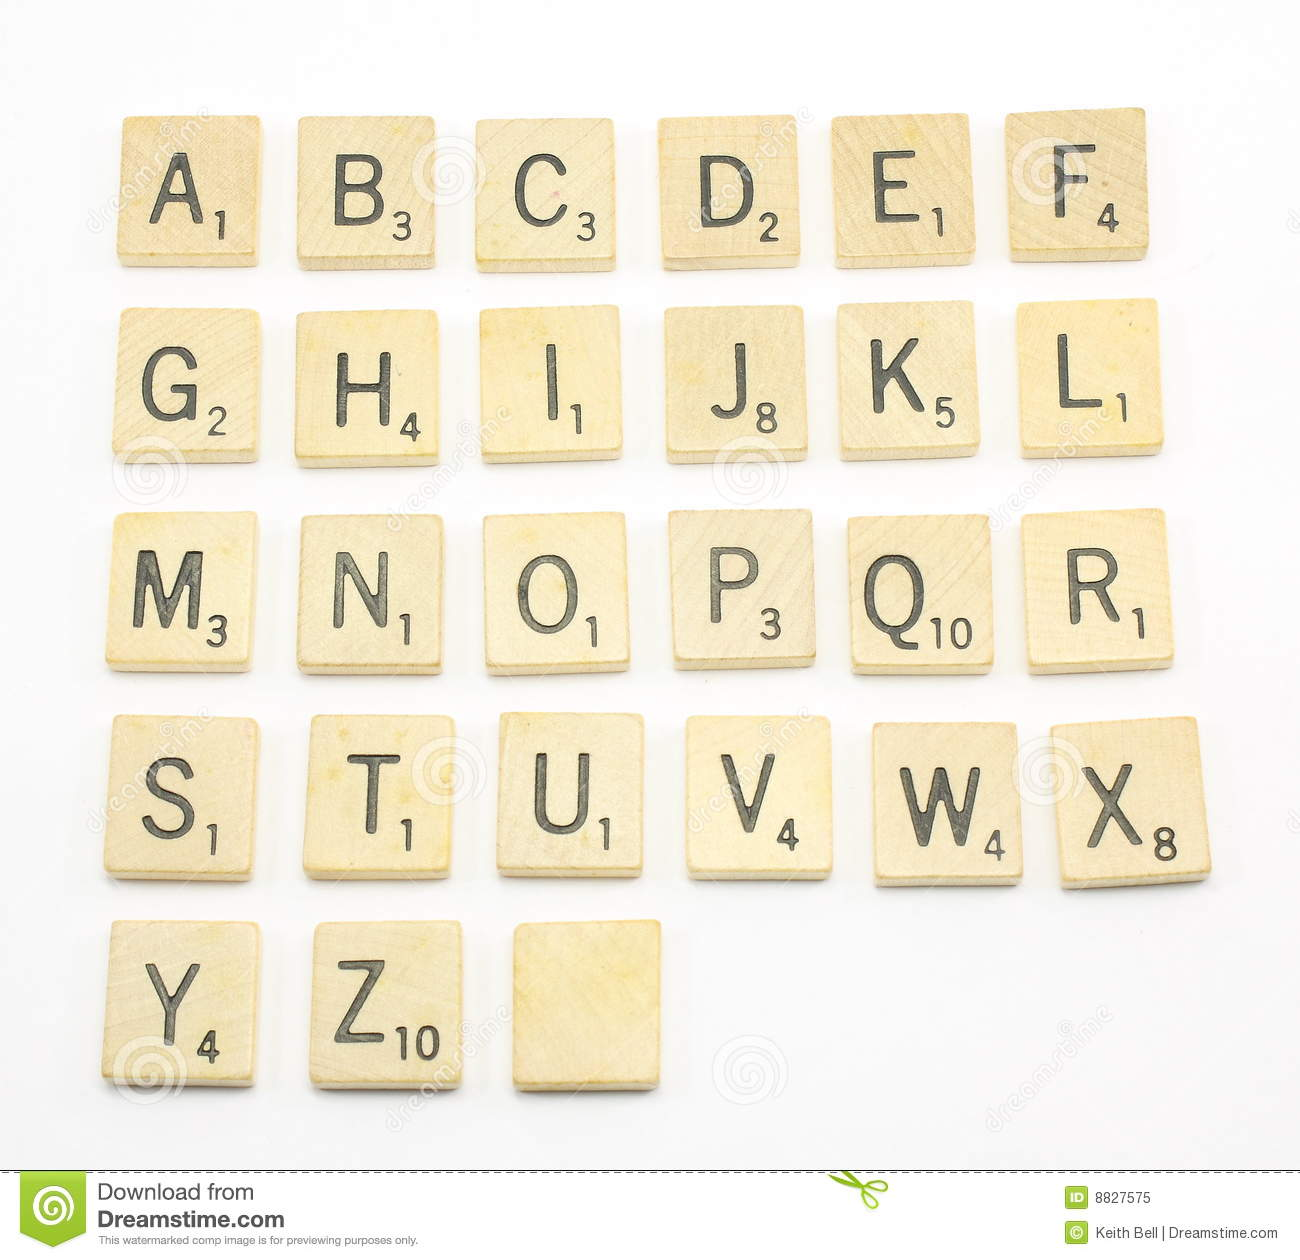 7 Best Images of Free Printable Letter Tiles - Making Words Letter ...